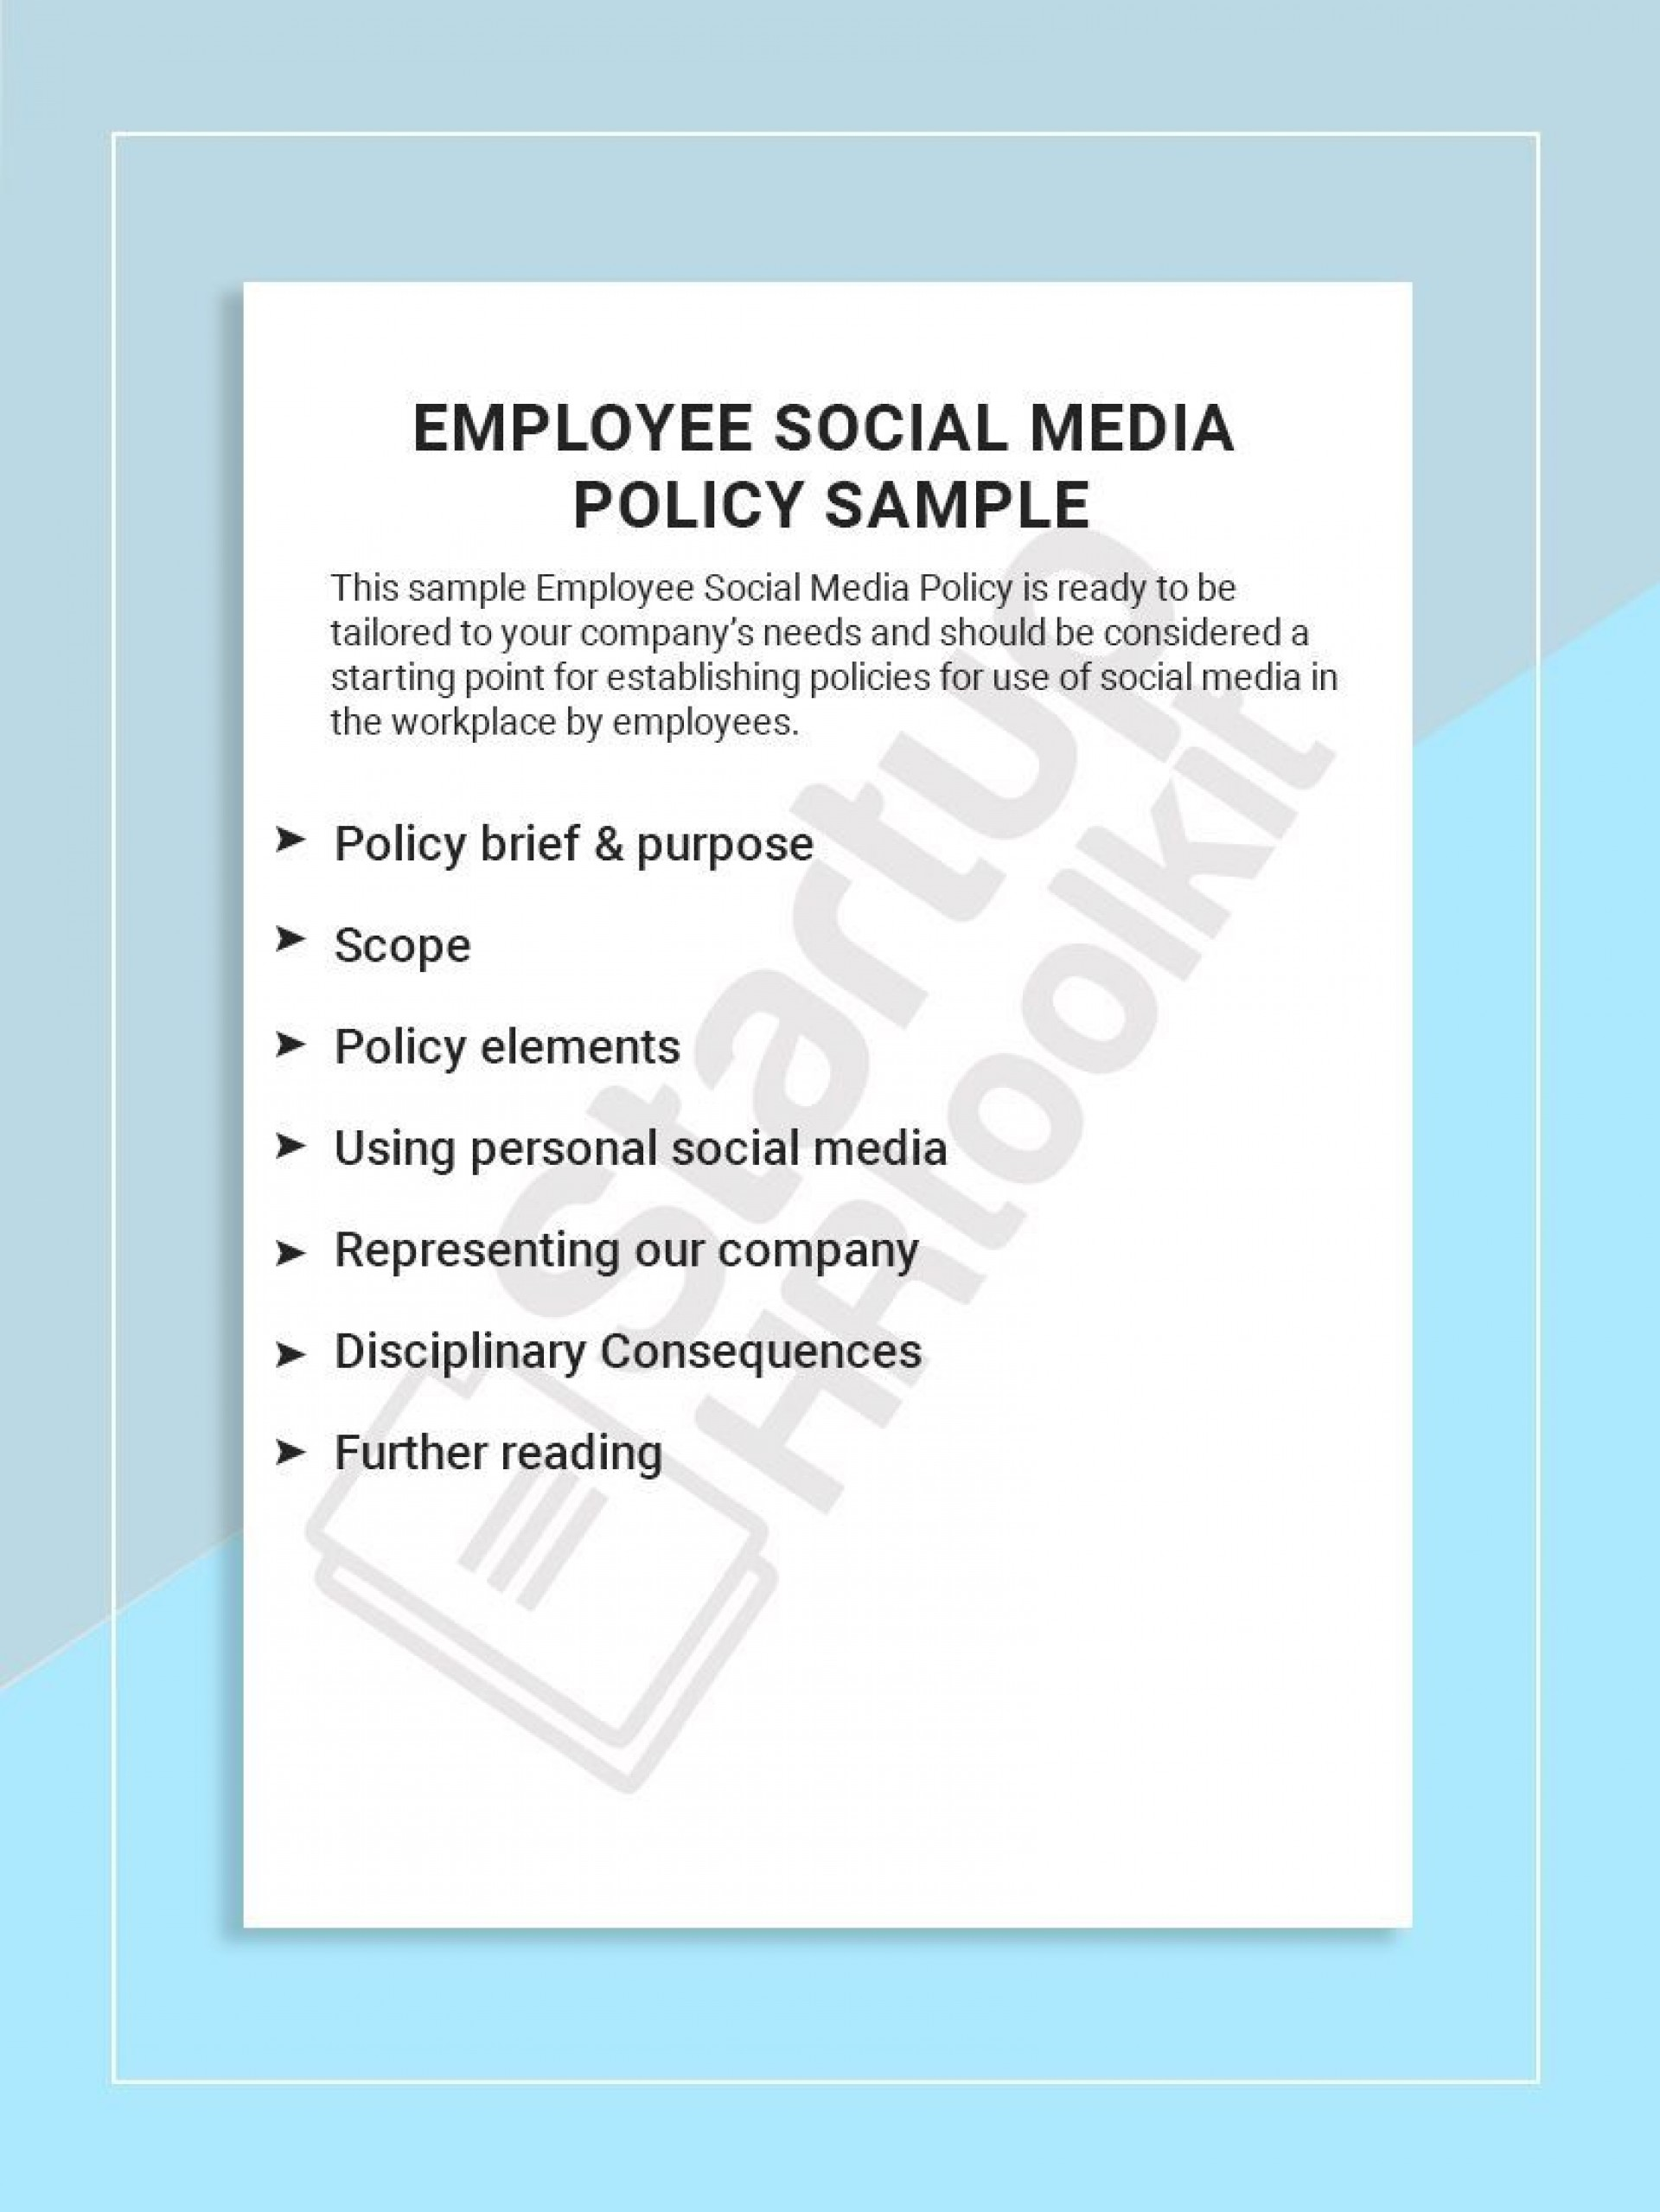 001 Best Social Media Policie Template High Def  Simple Policy Australia Example For Small Busines1920